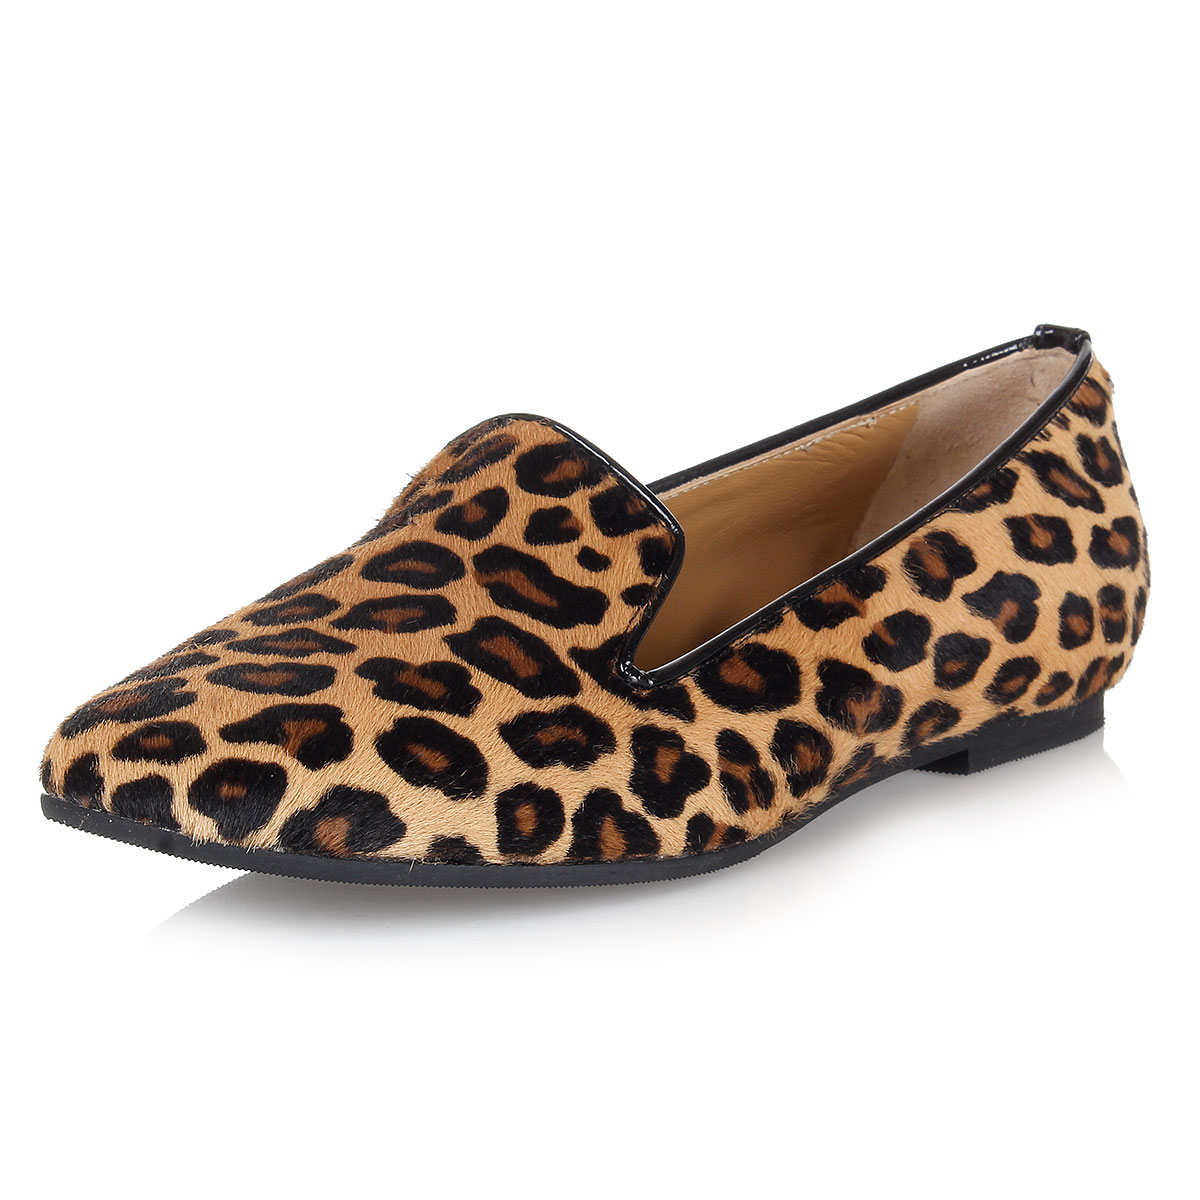 Discover the latest styles of women's casual flats from your favorite brands at Famous Footwear! Find your fit today! Women. View All. Women's Casual Shoes Flats style(s) found. All Inventory; Aerosoles Women's Betunia Medium/Wide Flat Leopard Tan. $ 29% OFF. A2 by Aerosoles Women's Architect Flat Bronze Snake.